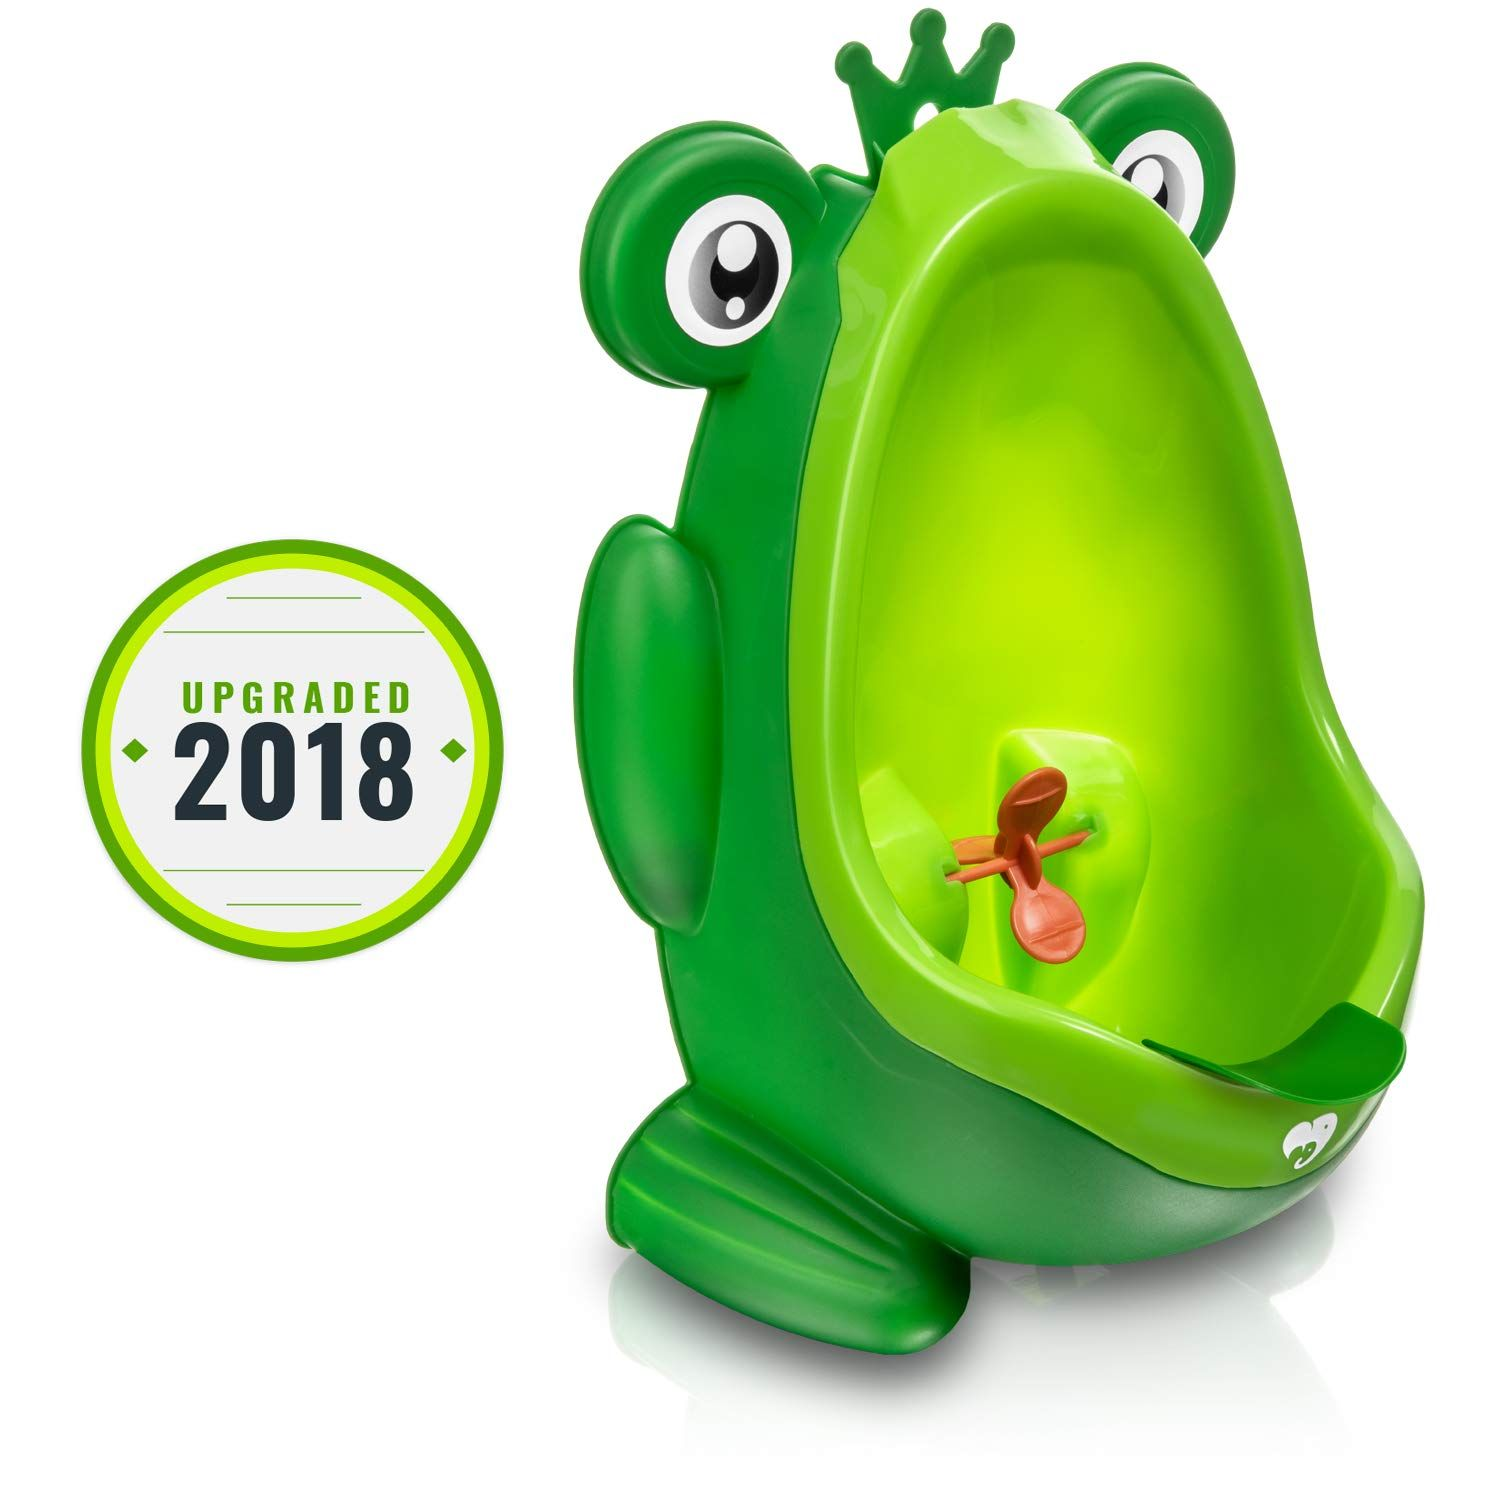 Frog Potty Training Urinal For Boys Toilet With Funny Aiming Target Green You Can Get Additional Details At The Potty Training Urinal Potty Training Urinal